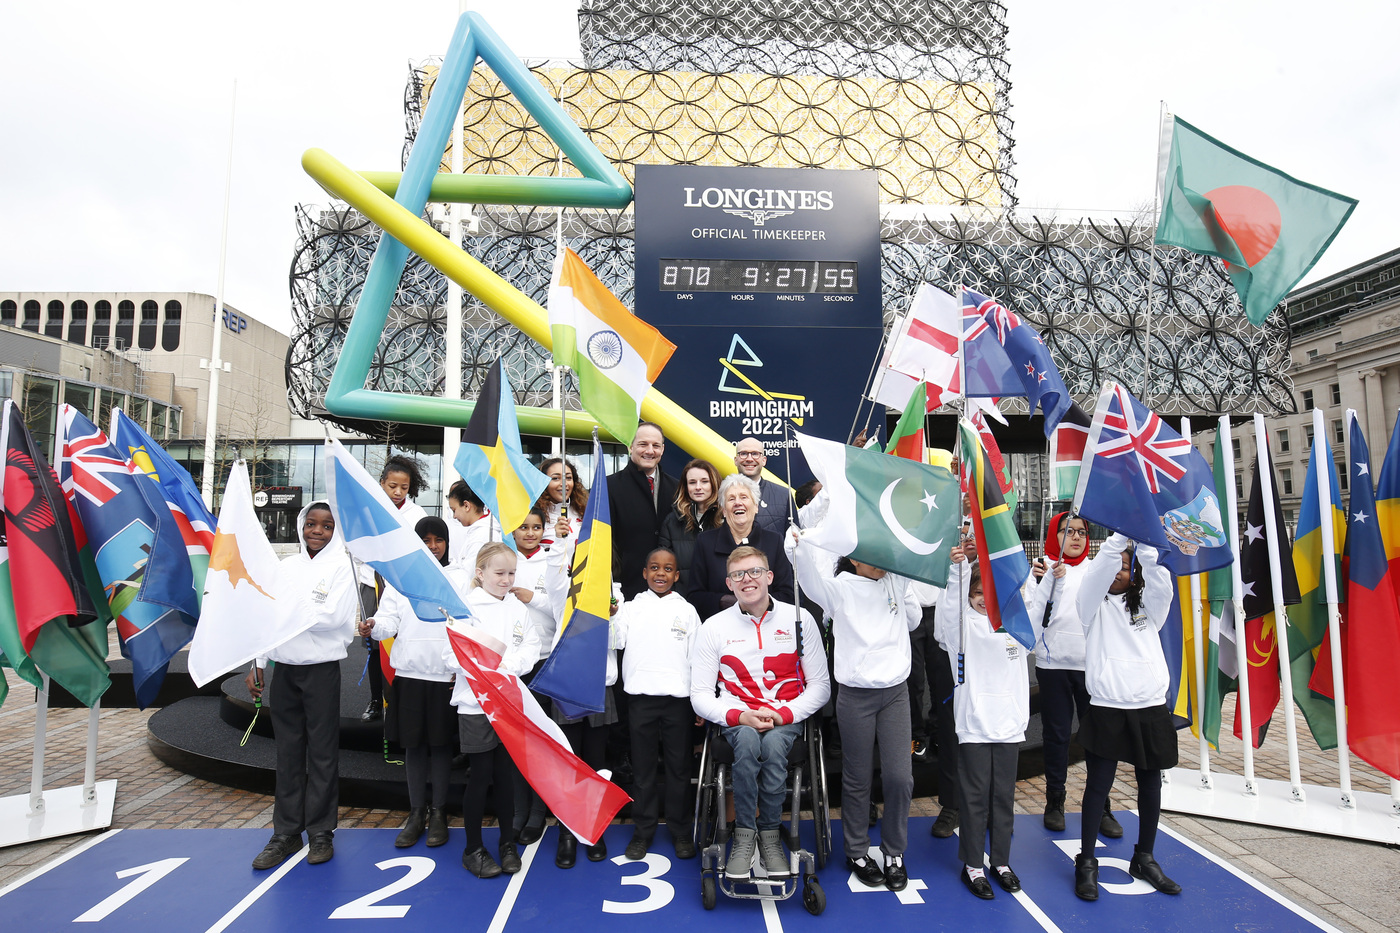 Longines Commonwealth Games Event: Longines and CGF agree historic multi-Commonwealth Games partnership, as Birmingham 2022 Countdown Clock is revealed 1